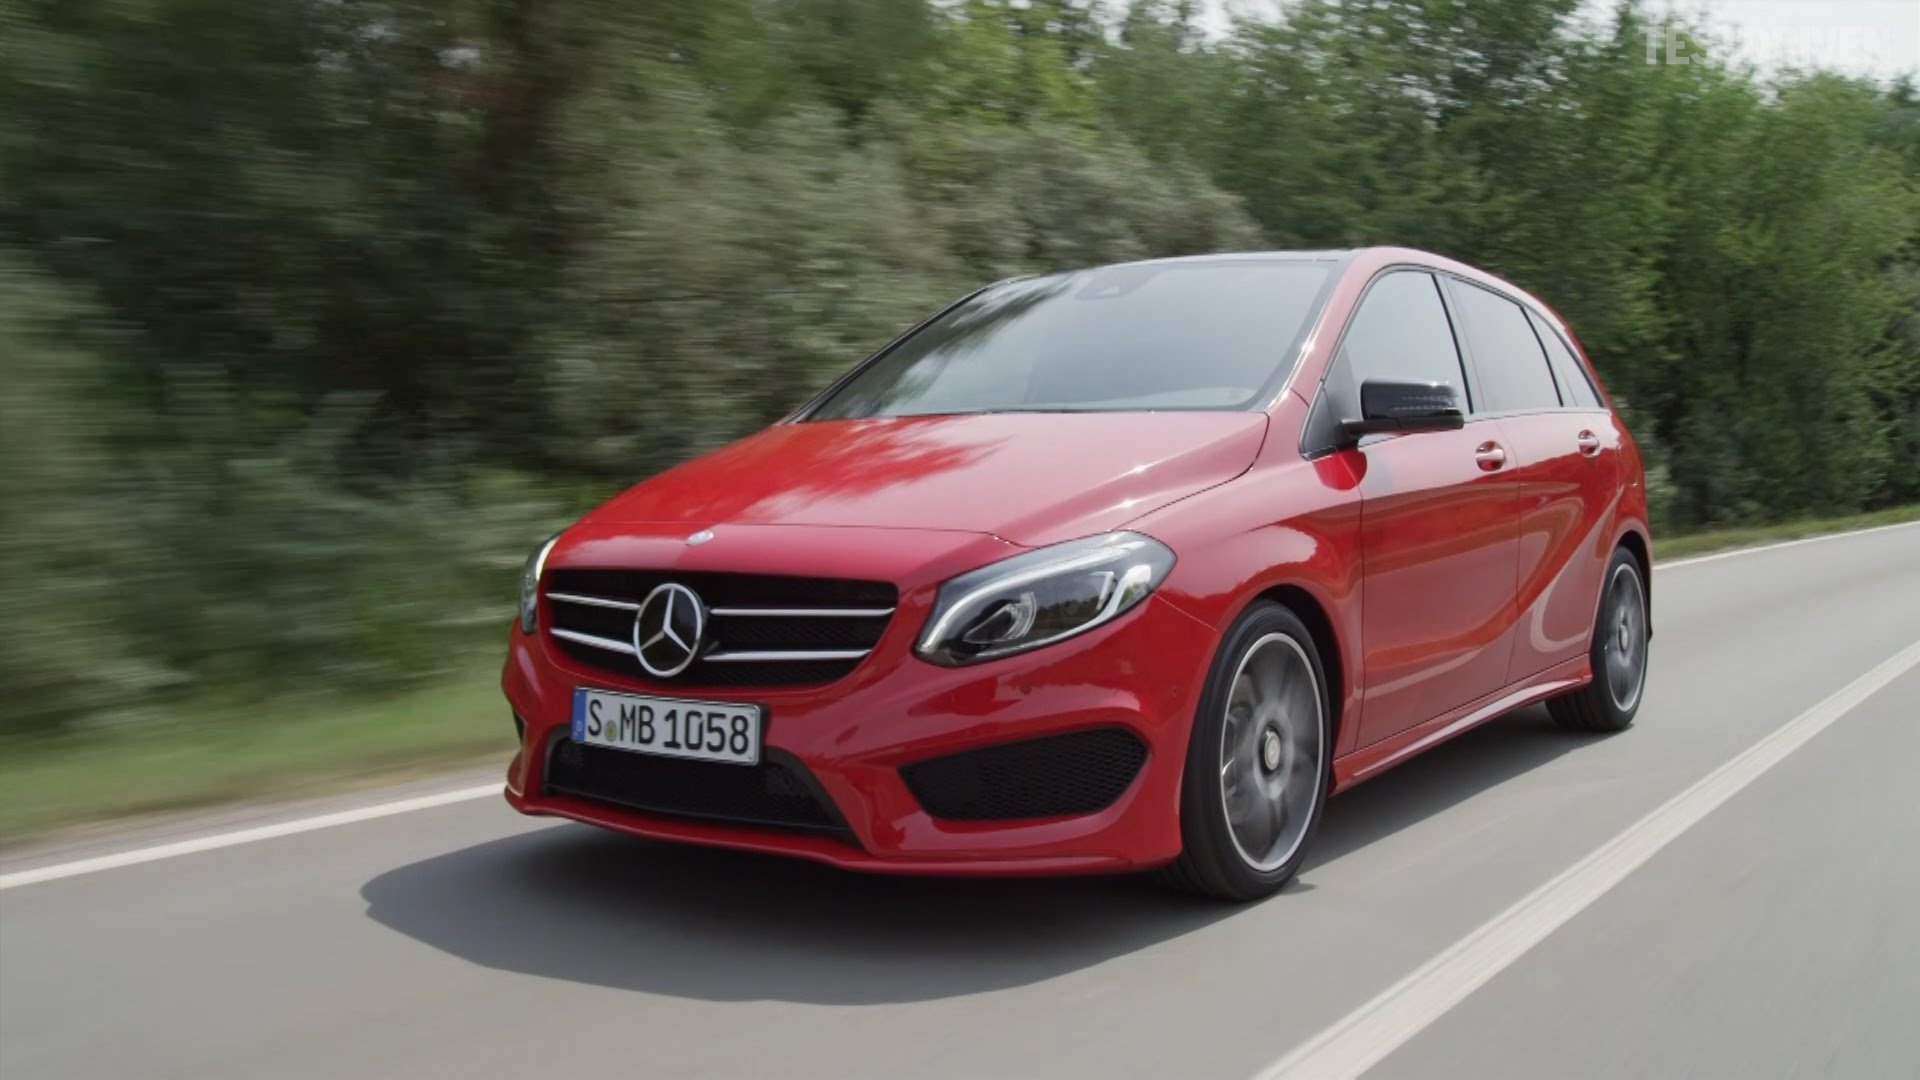 Vr Tuned Ecu Flash Tune Mercedes B250 Cgi I4 Turbo 211hp Vrt Mb